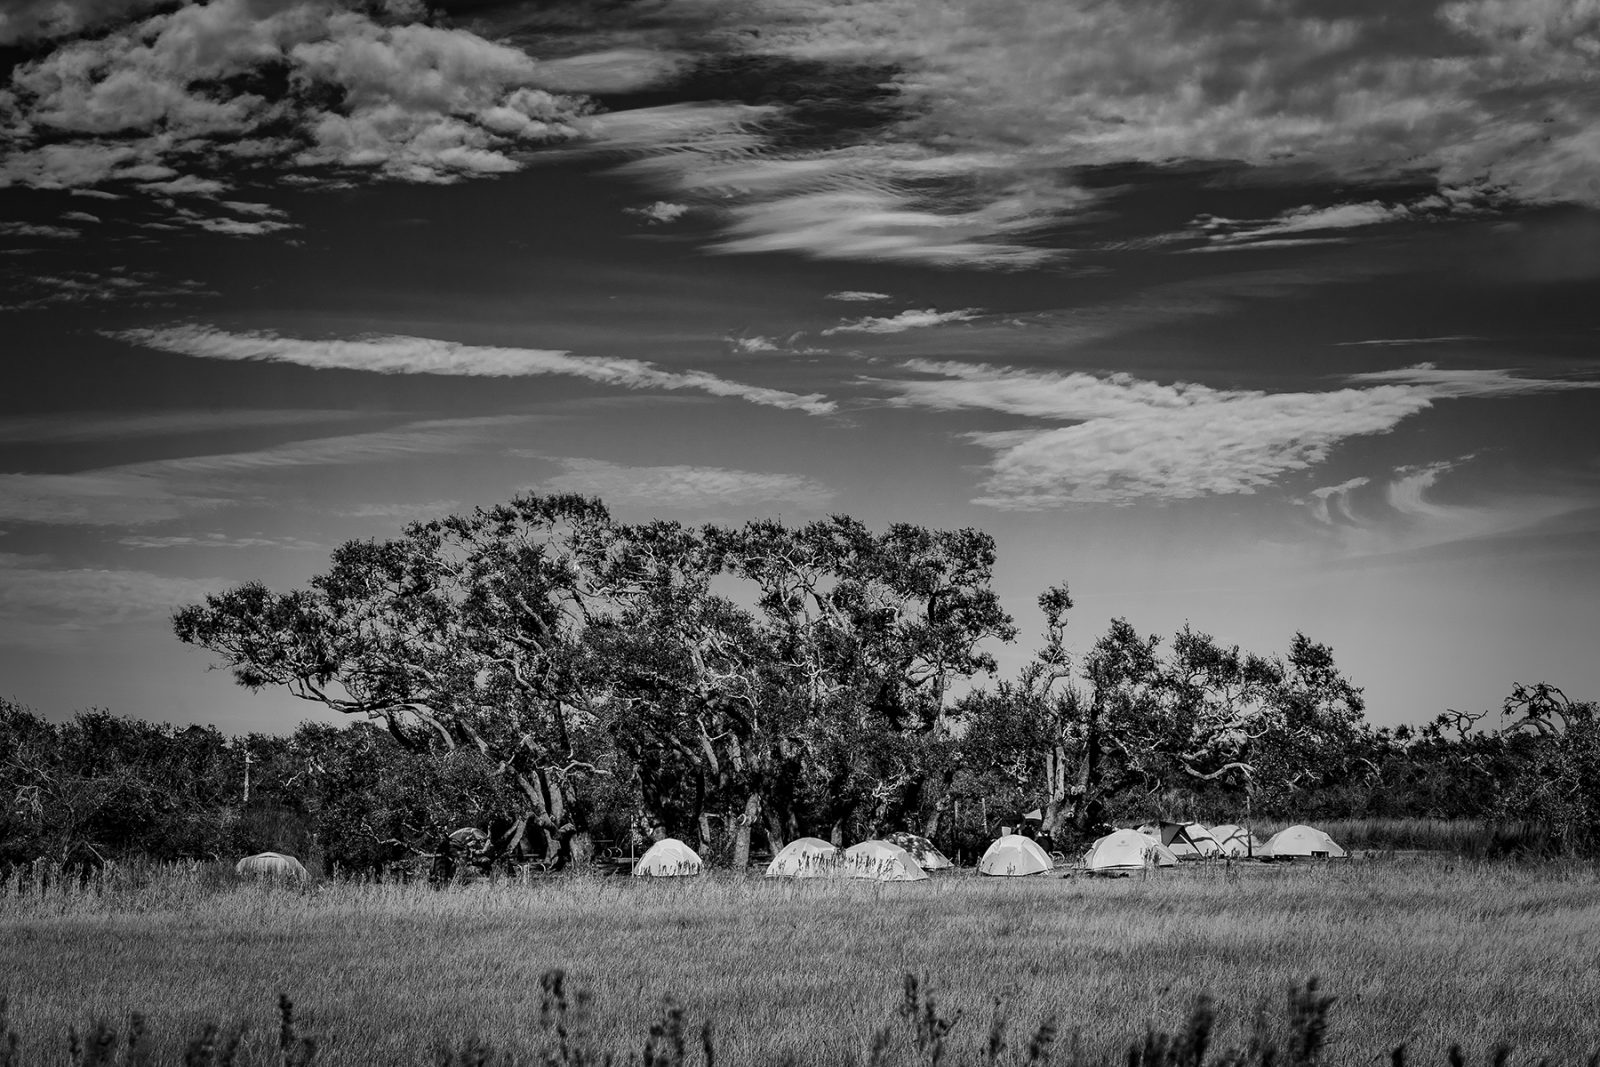 Camp under the tree